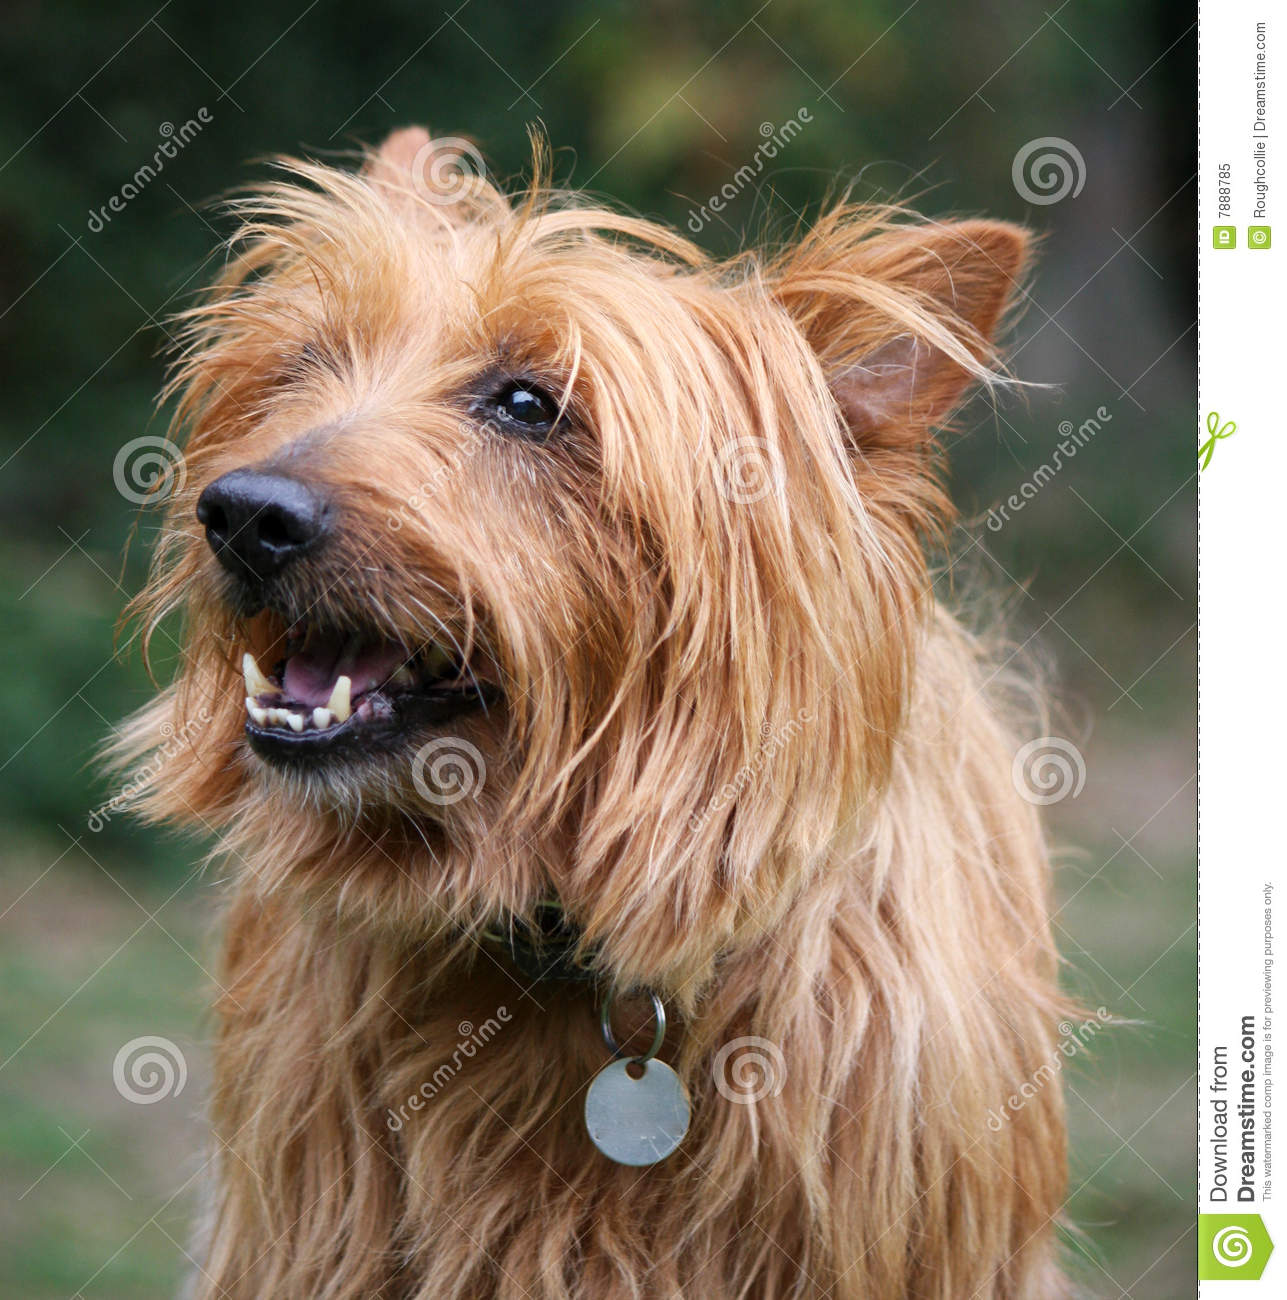 Australian Terrier Royalty Free Stock Photo - Image: 7888785